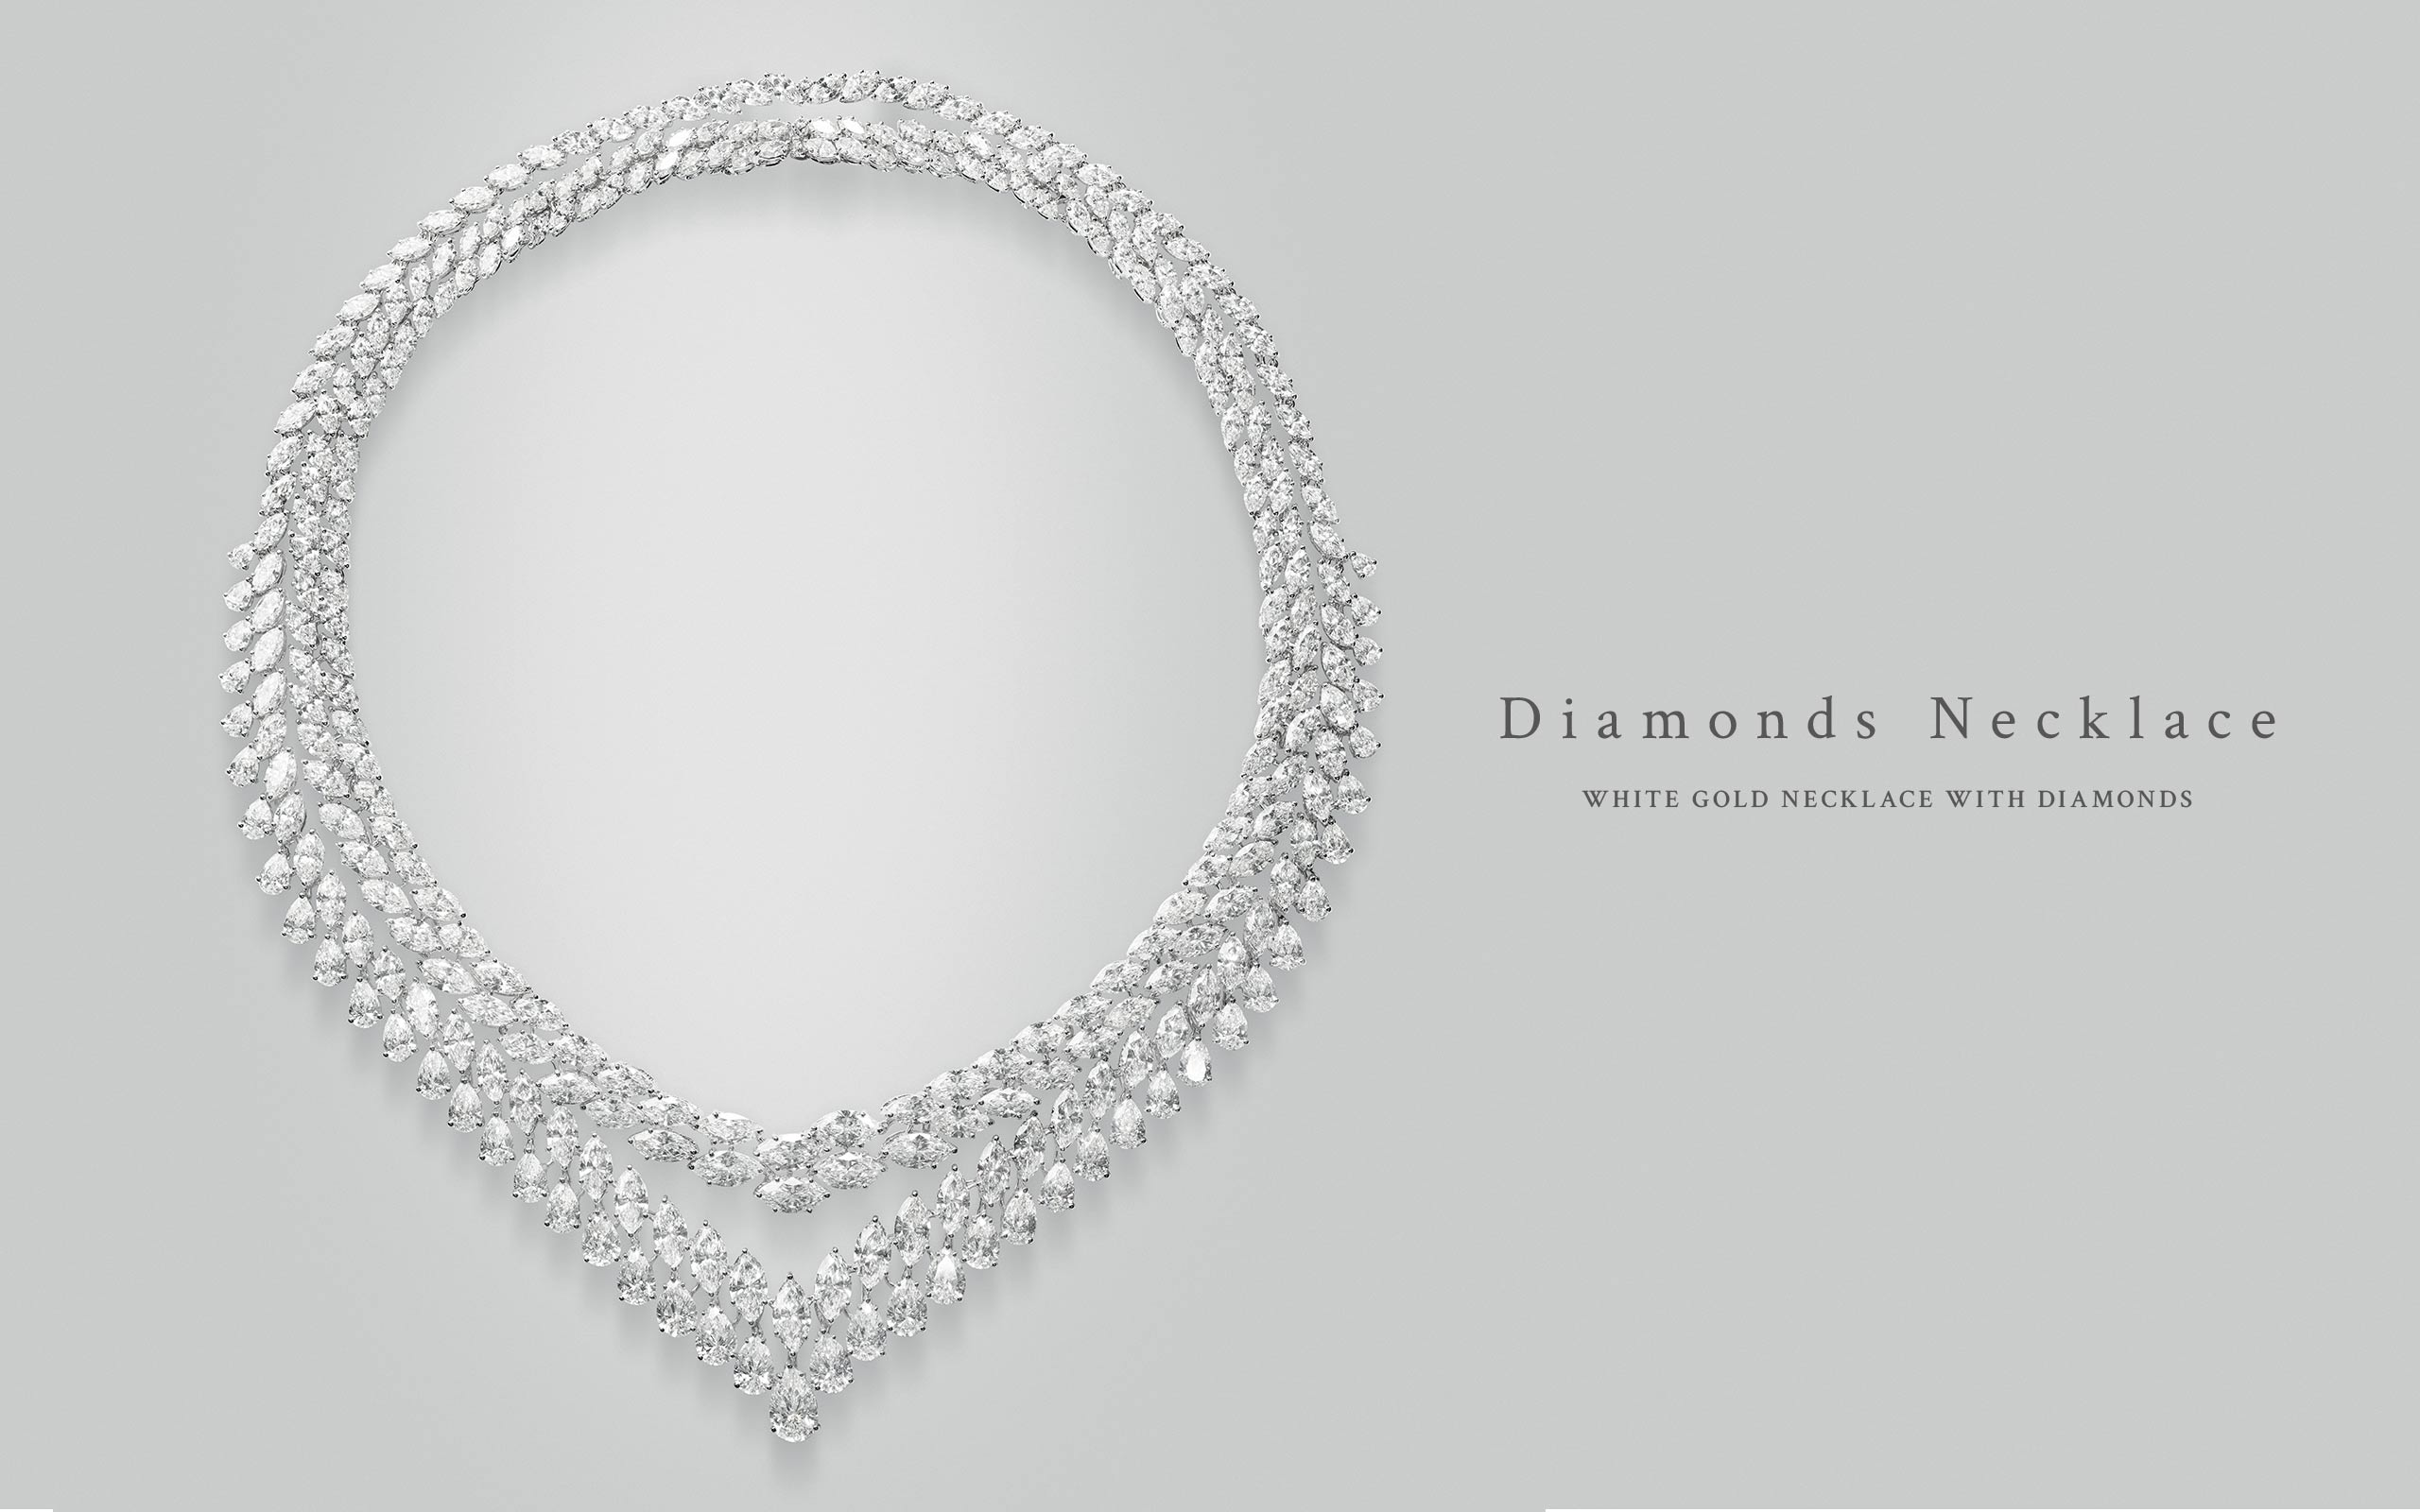 Diamonds Necklace 10 | Maria Gaspari